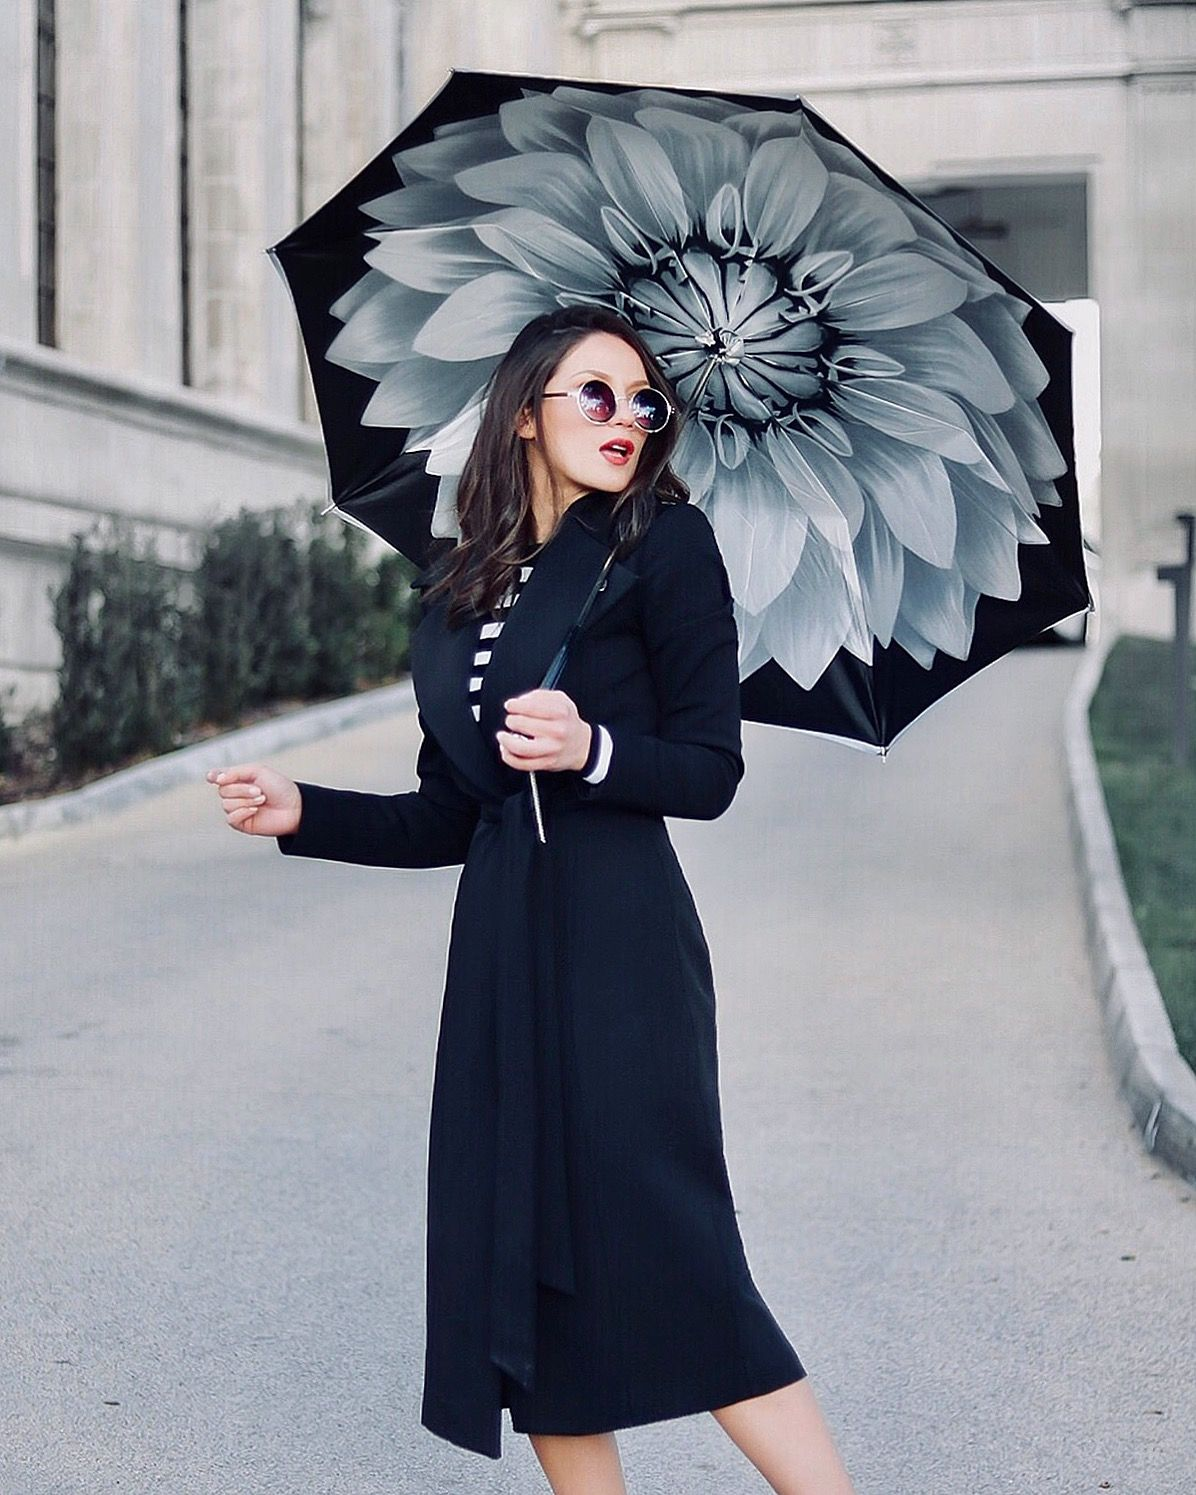 Today I Ll Let The Umbrella Do The Talking Thank You Pasottisince1956 Suzypap Umbrella Coat Blac Fashion Casual Fashion Style Inspiration